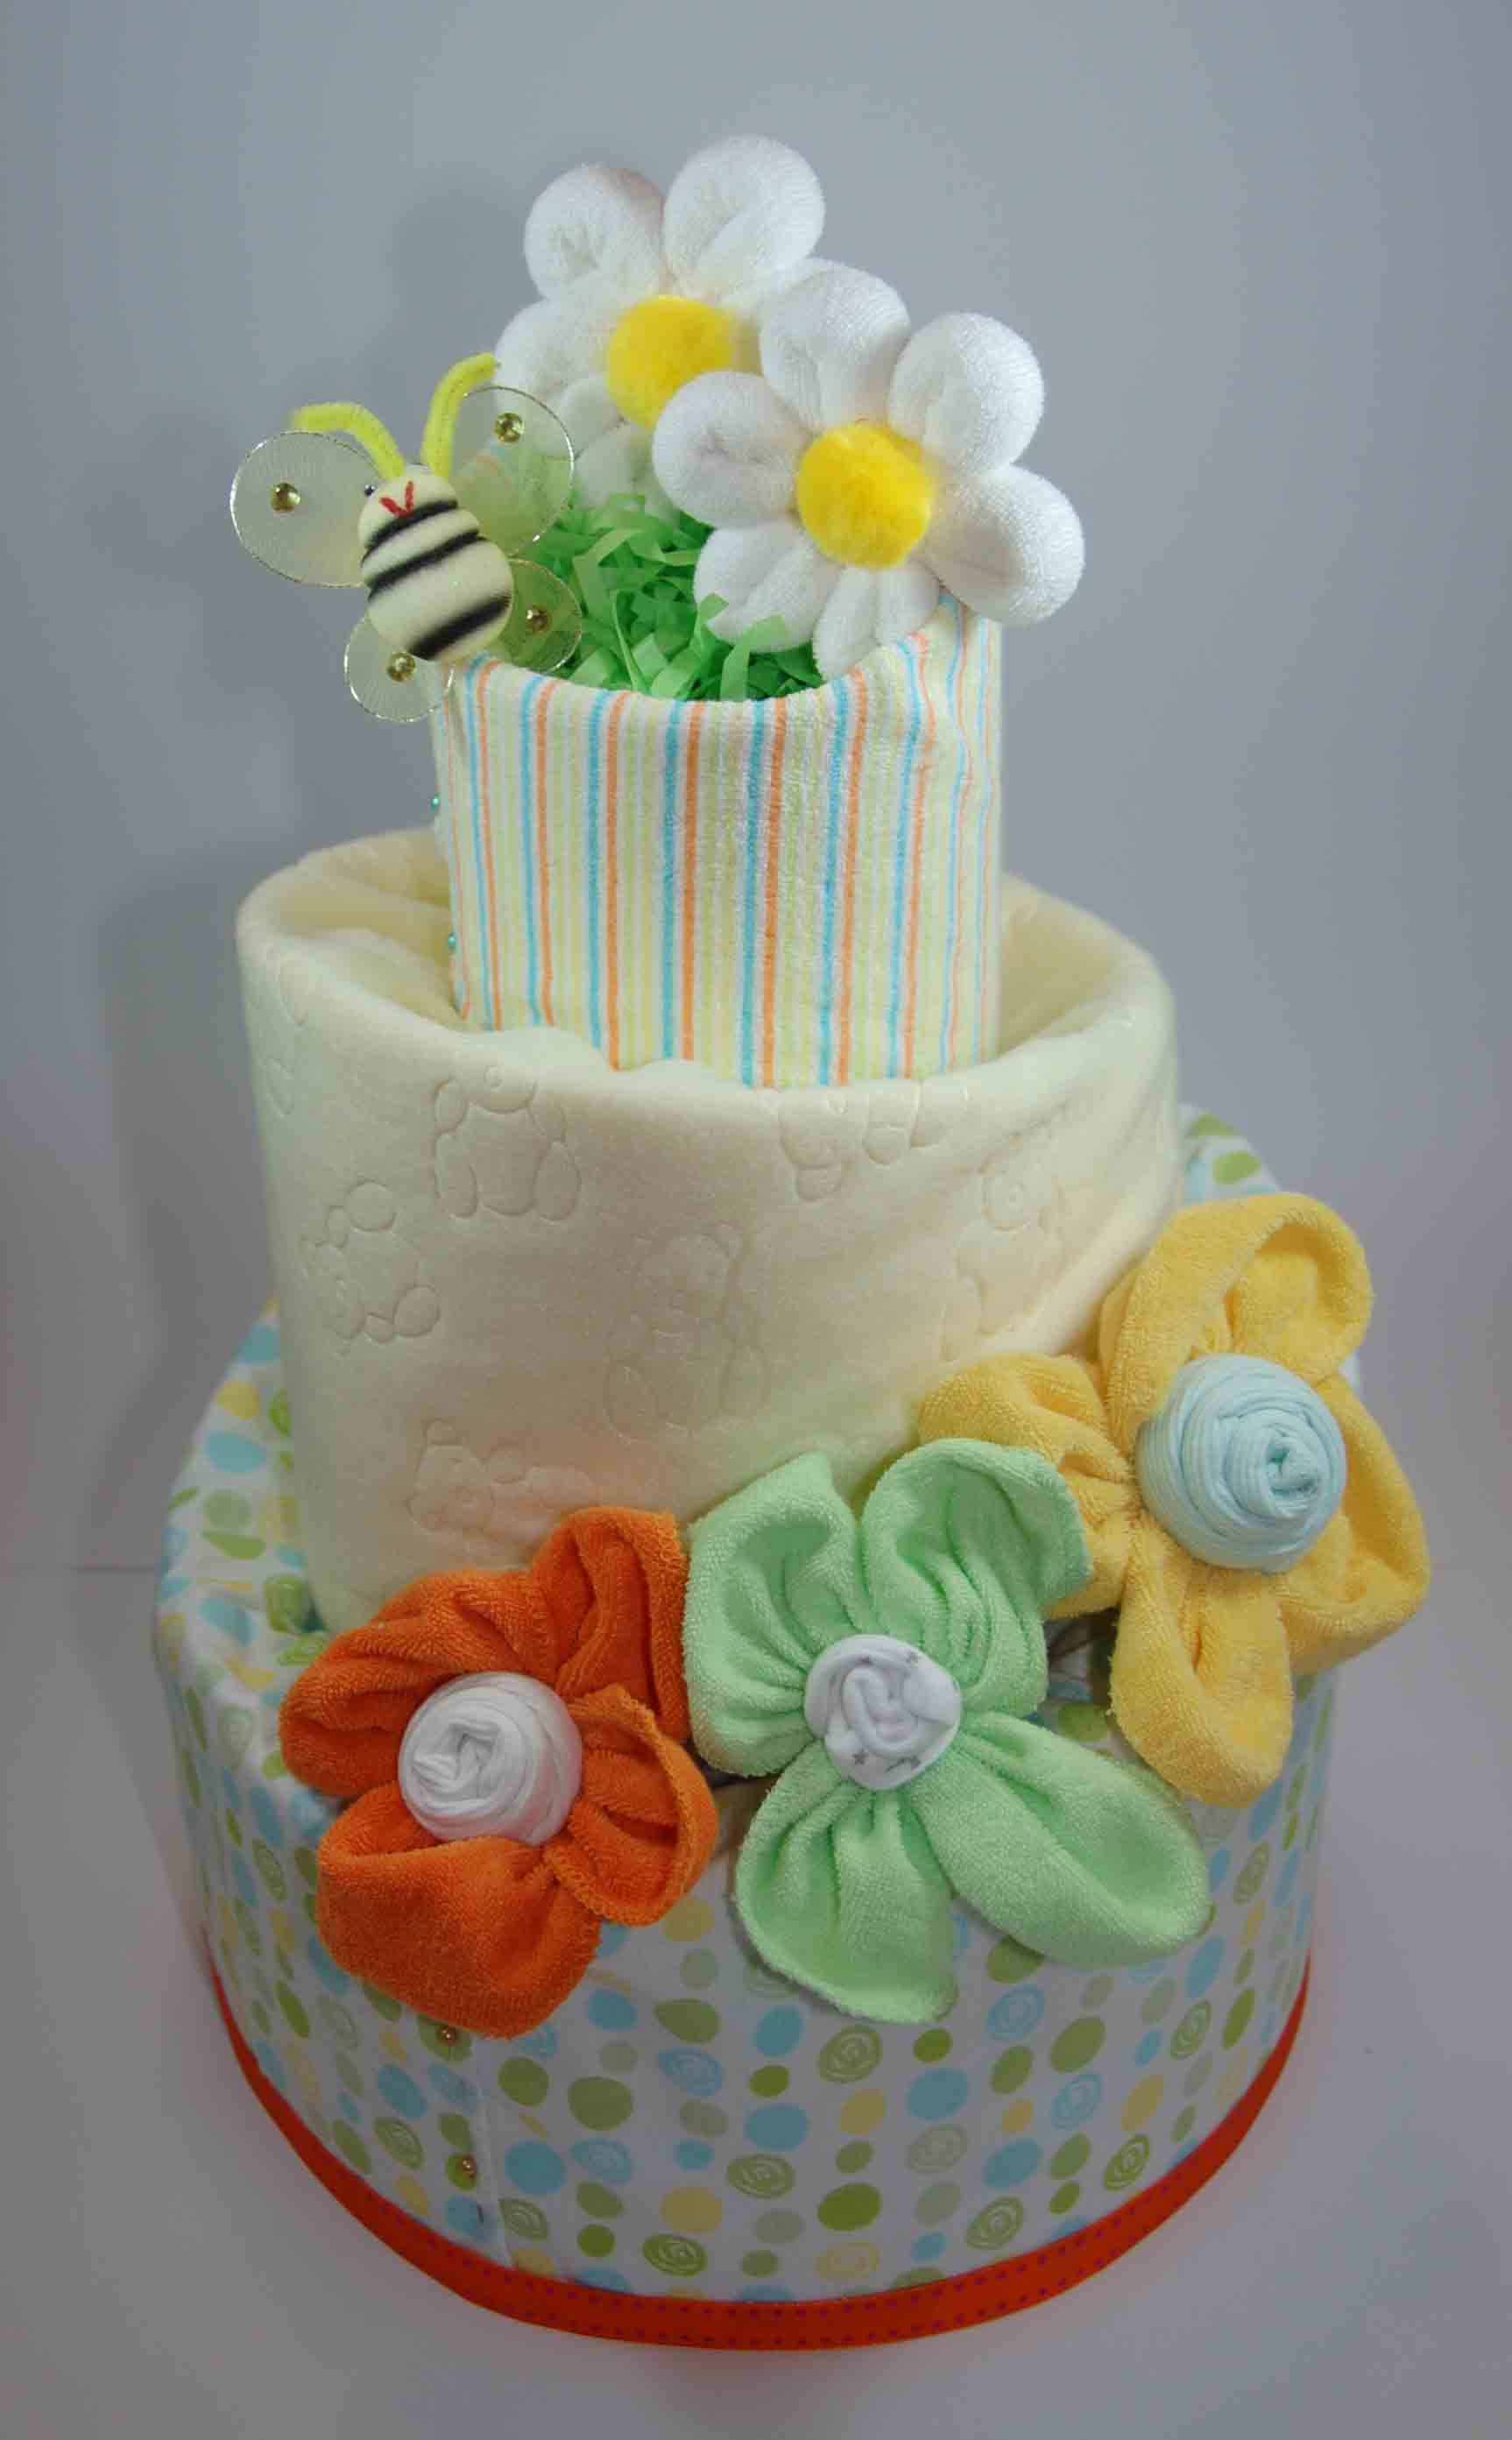 Cakes in Neutral colours